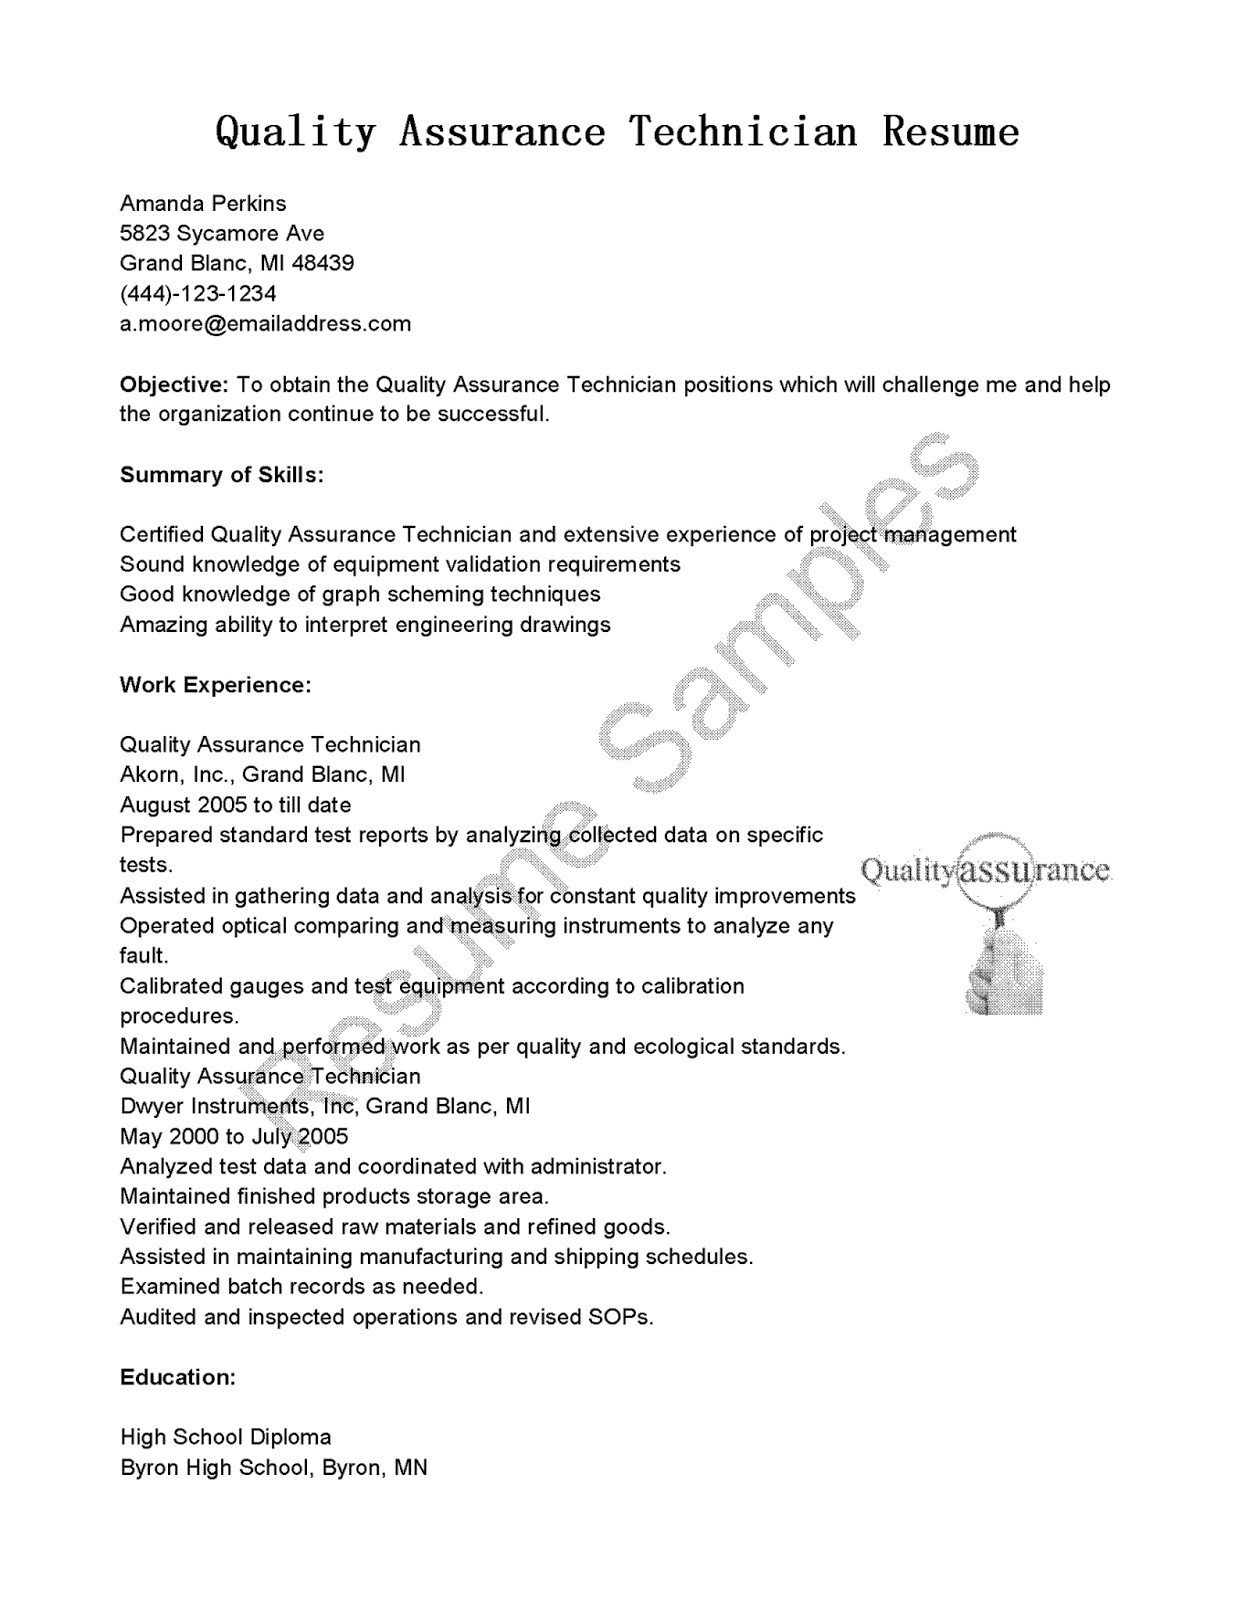 principal resume template example-Assistant Principal Resume Lovely 40 Best Cover Letter for Resume Assistant Principal Resume Best 1-f